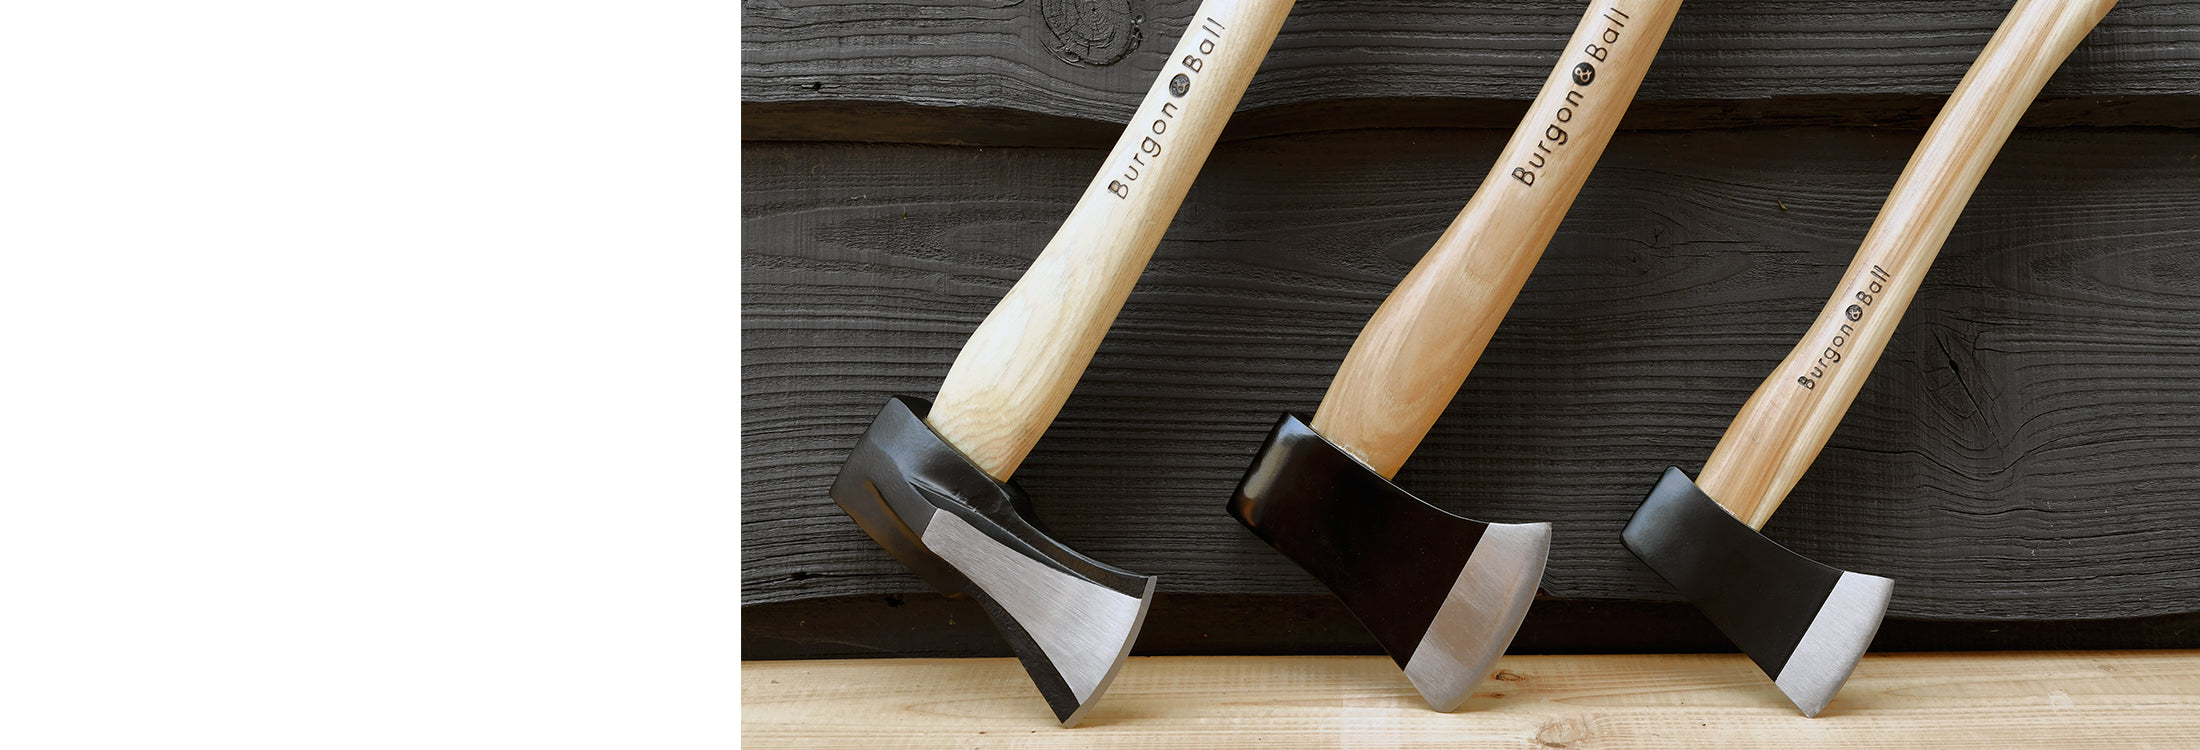 Axes and Wood Cutting Tools